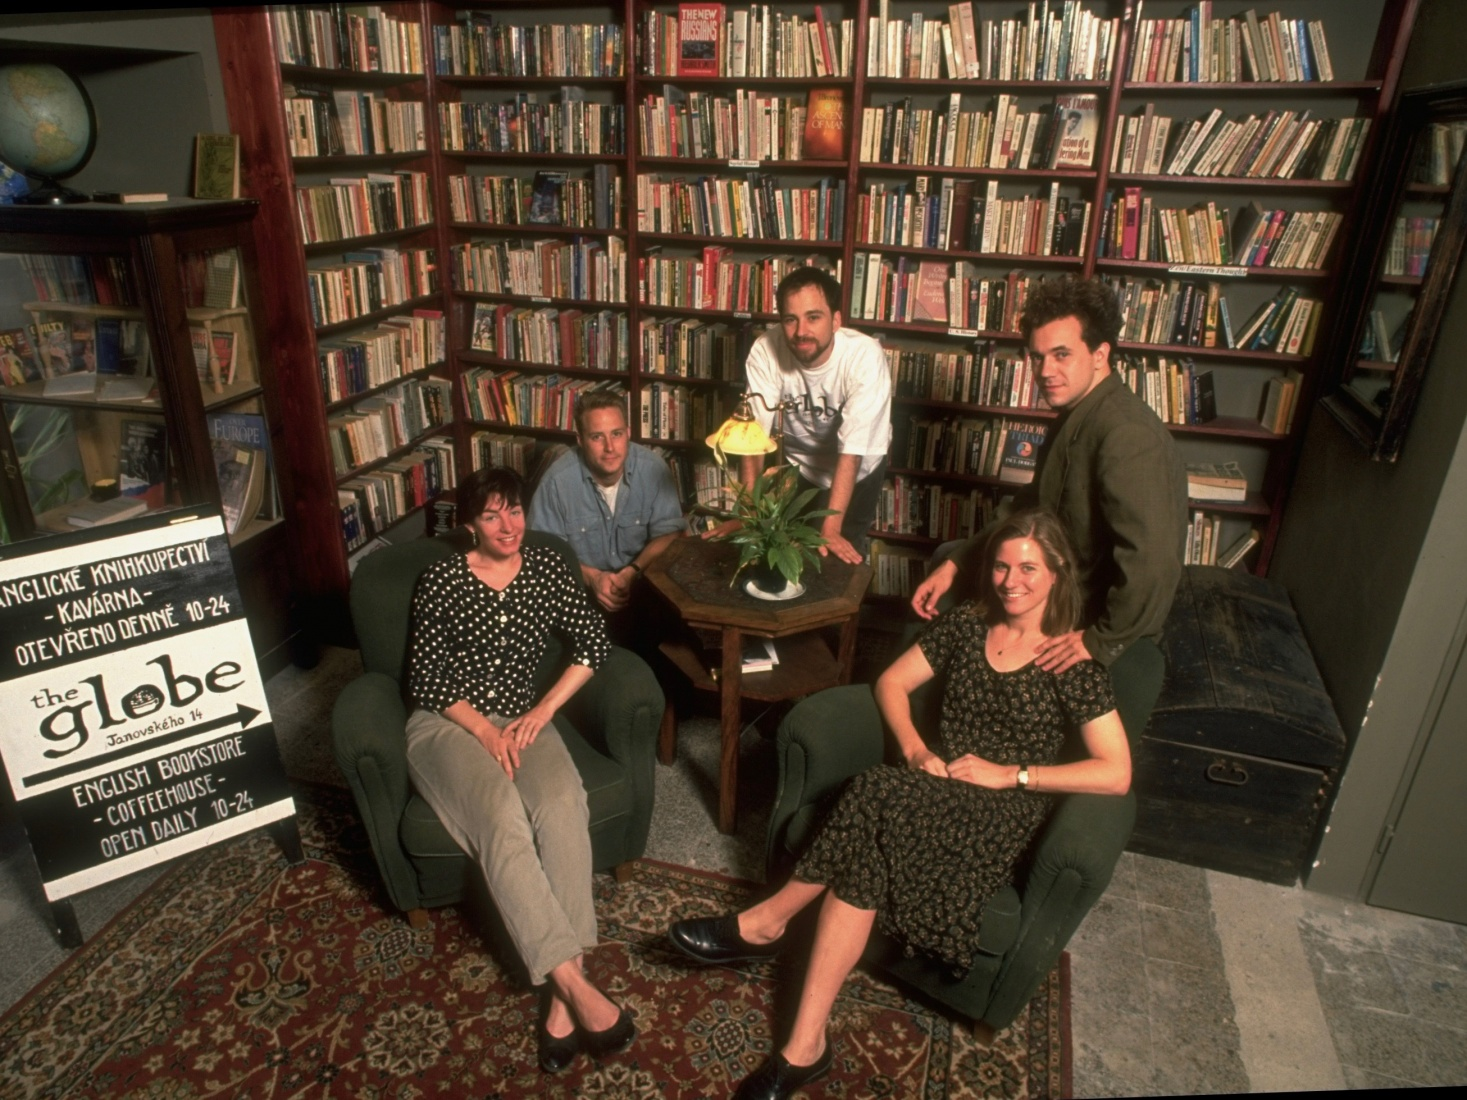 The five Globe founders in August 1993 in the shop in Prague, just a few weeks after the bookshop and coffeeshop opening: (R-L) Markéta Rogers (Janku), Scott Rogers, Mark Baker, Jasper Bear and Maura Griffin. Photo by Chris Niedenthal/The LIFE Images Collection/Getty Images